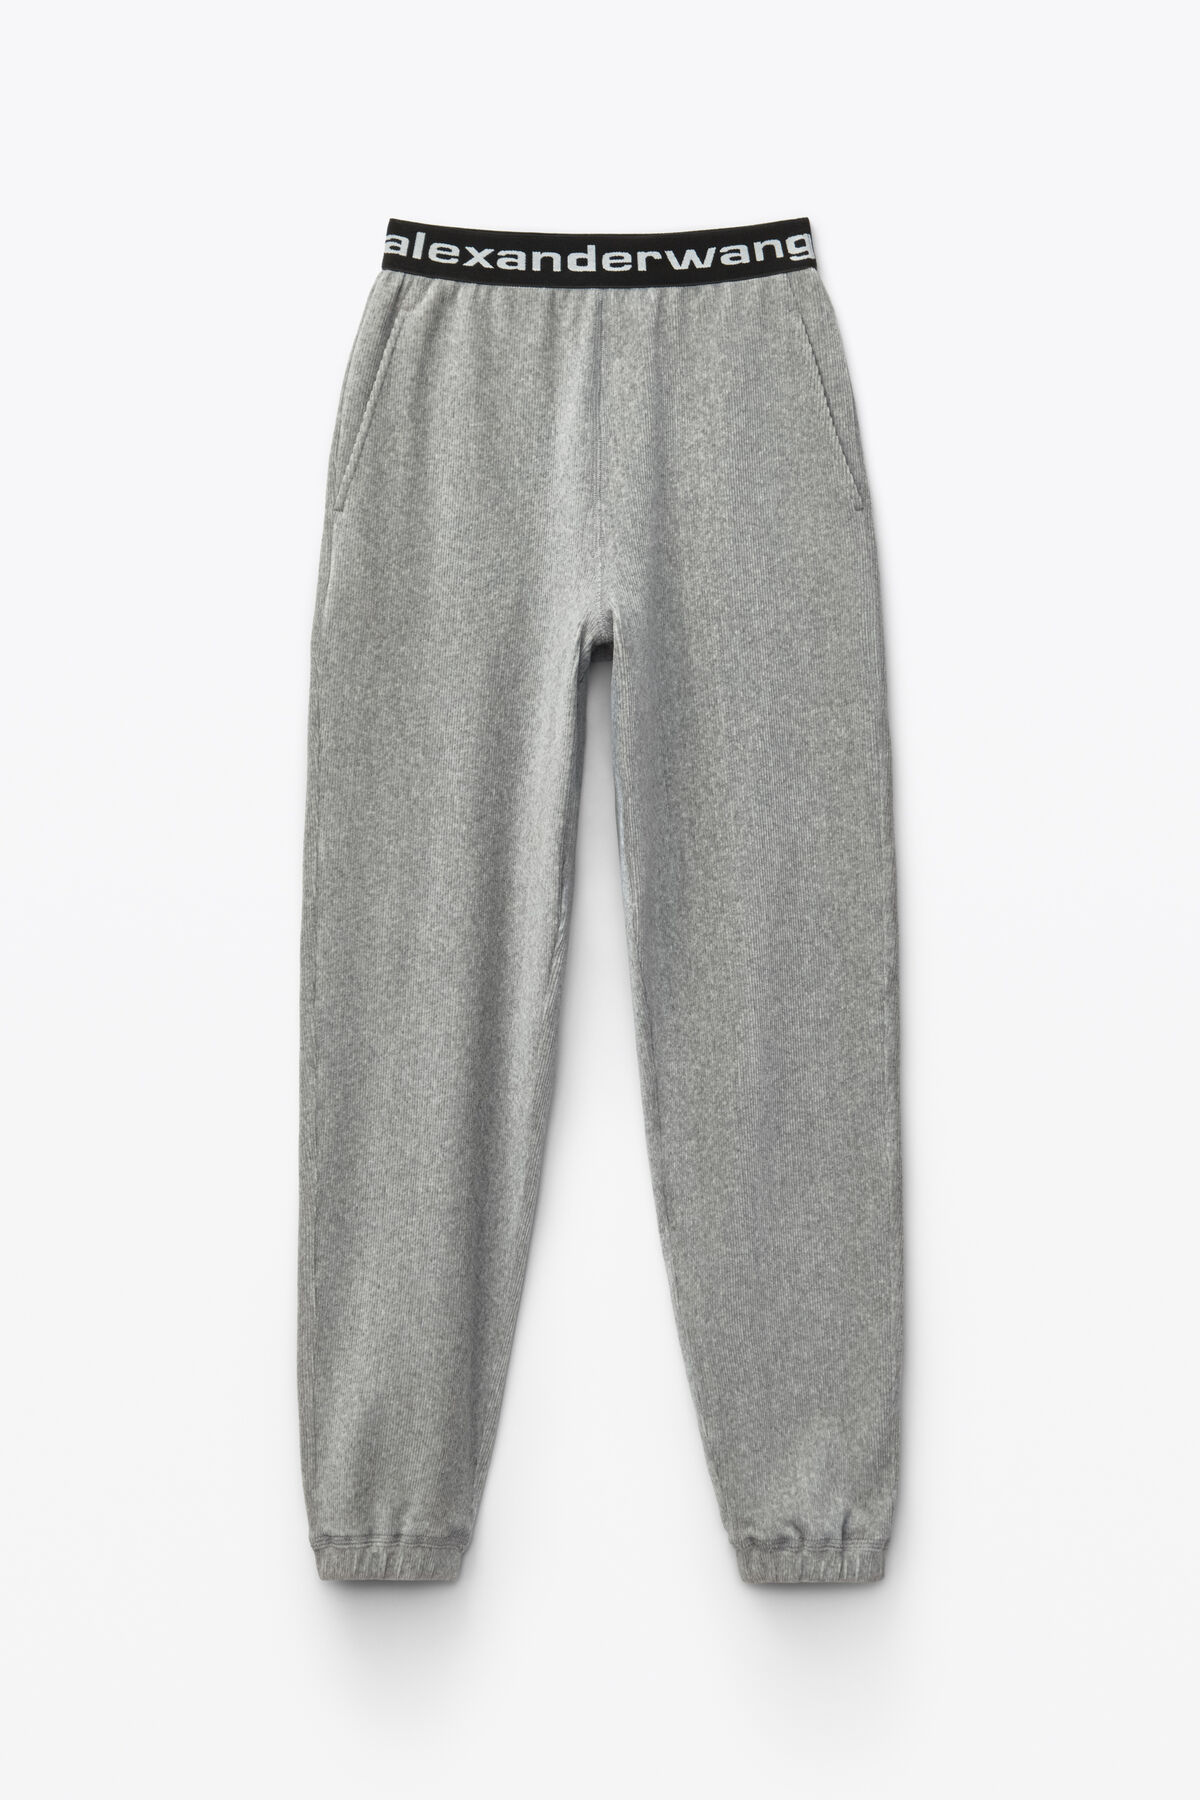 STRETCH CORDUROY PANTS by Alexander Wang, available on alexanderwang.com for $280 Kylie Jenner Pants SIMILAR PRODUCT